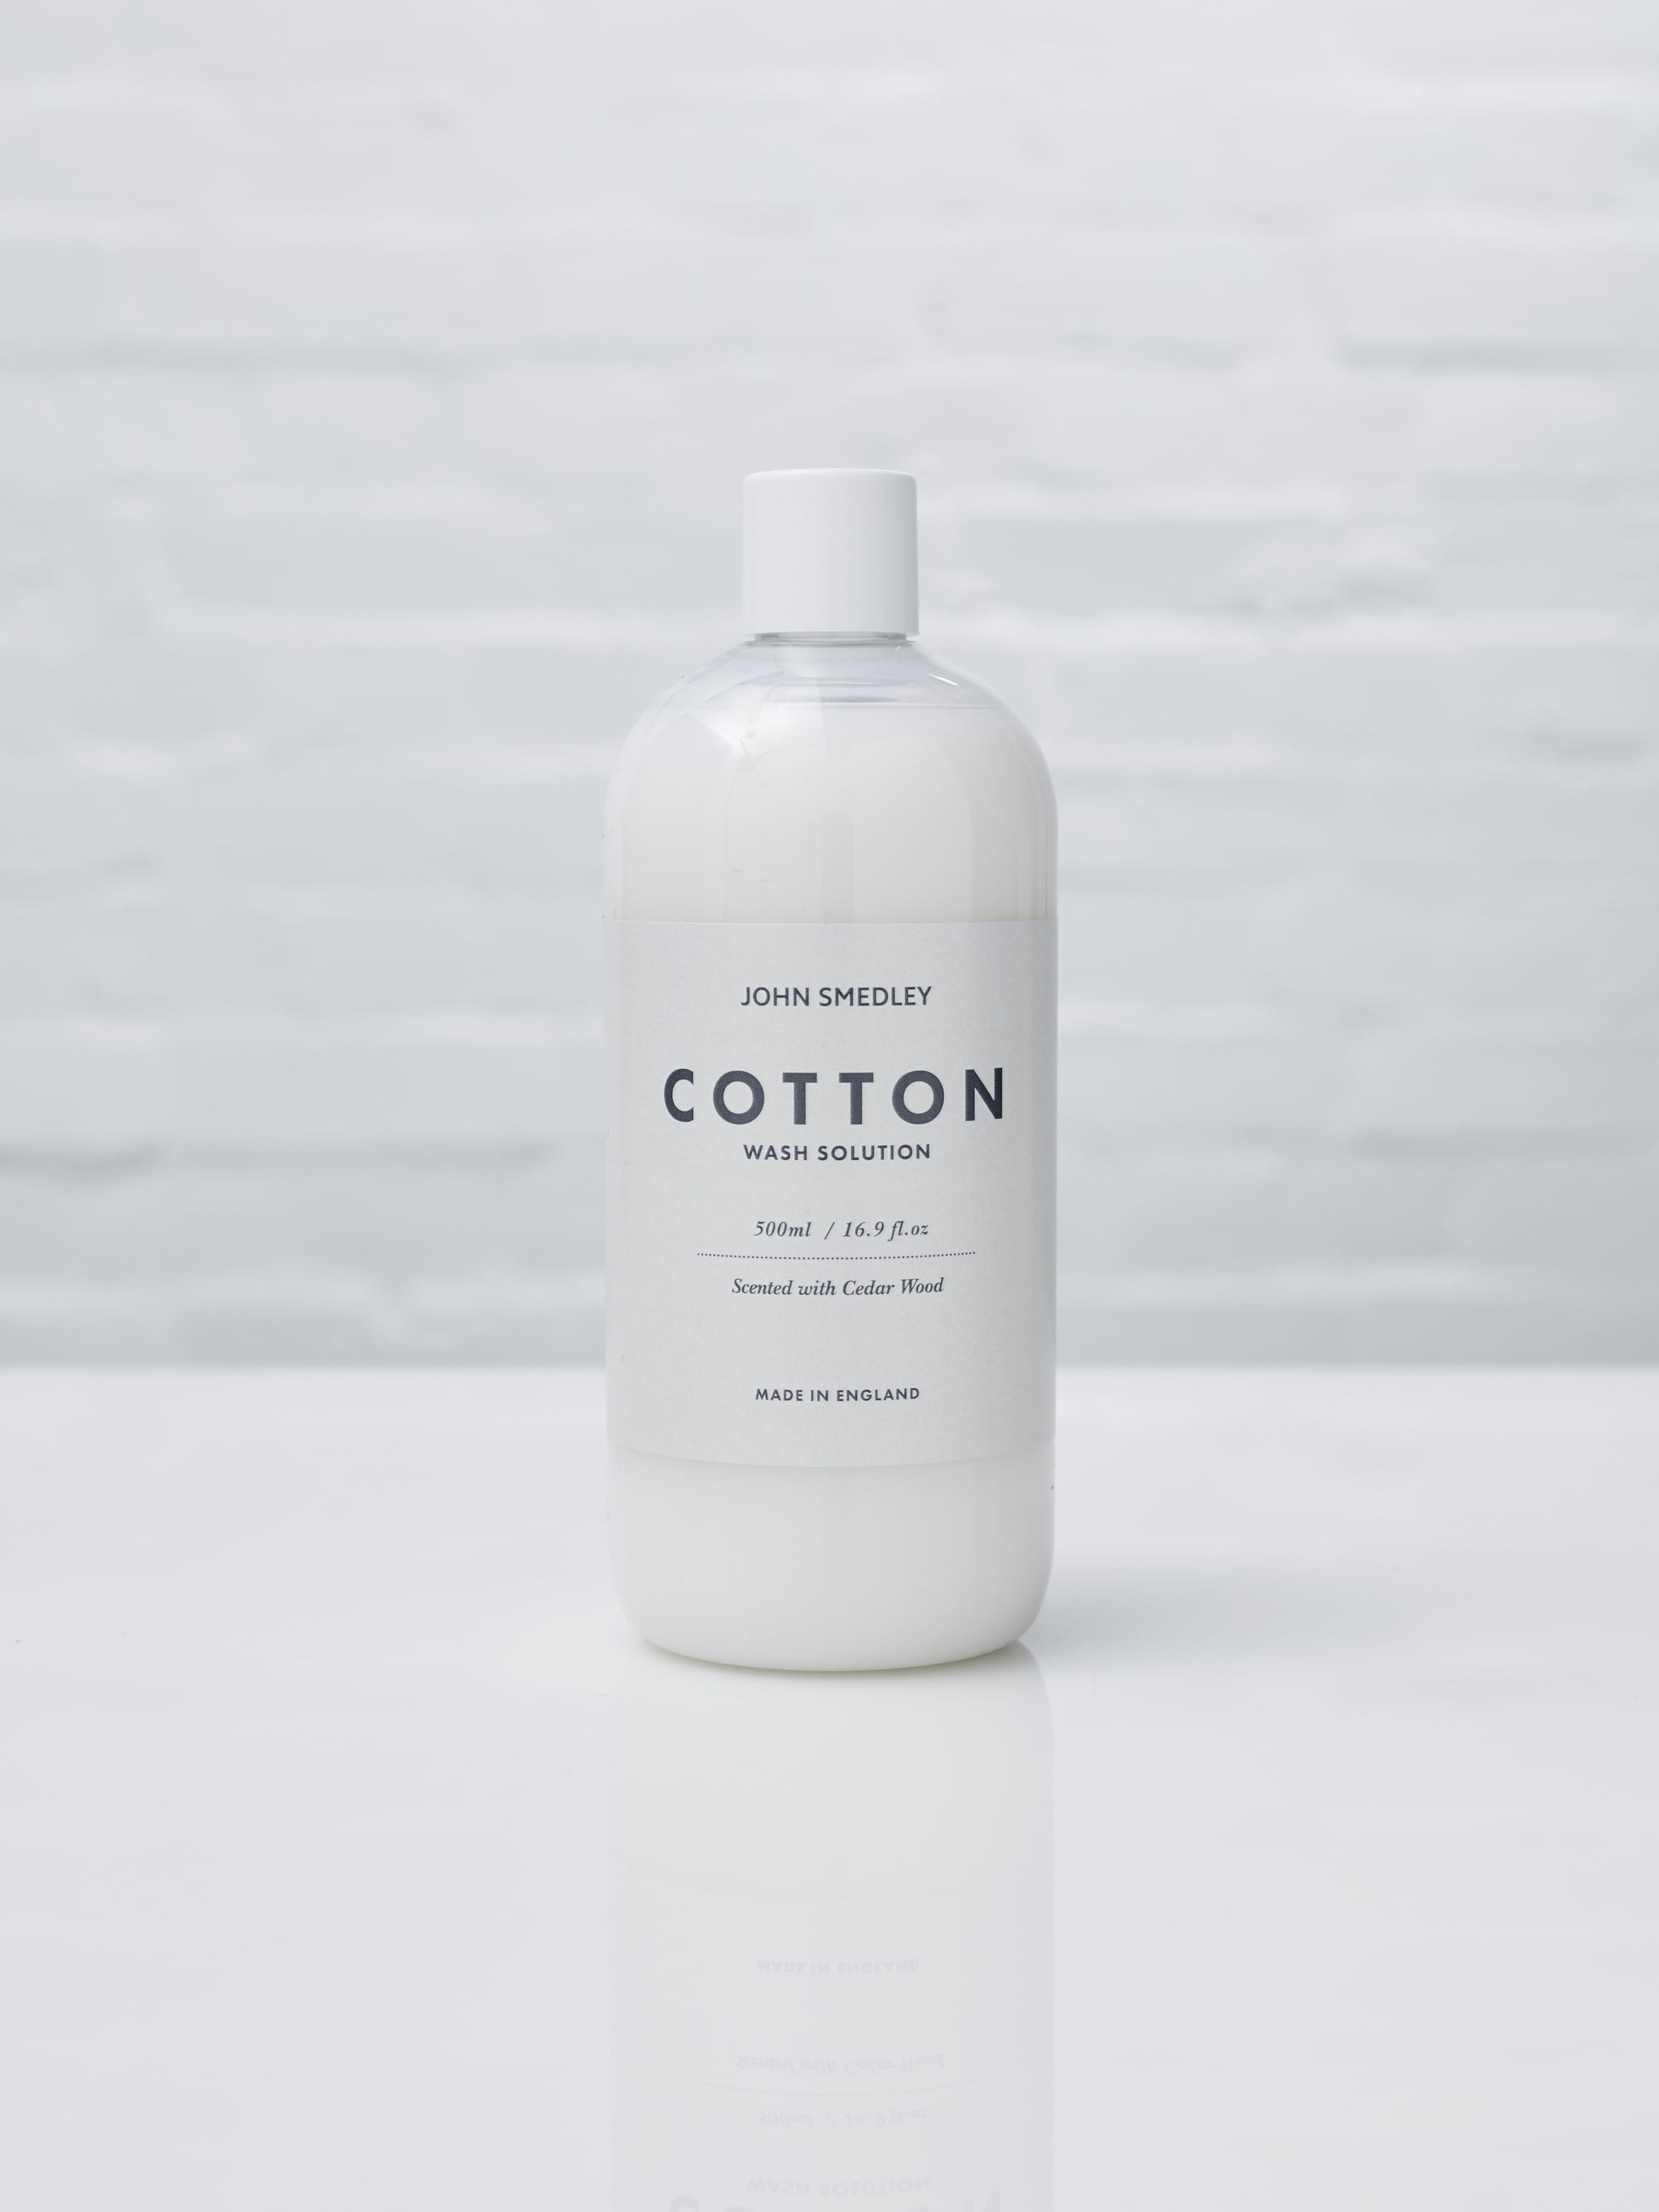 John Smedley Cotton Wash Solution